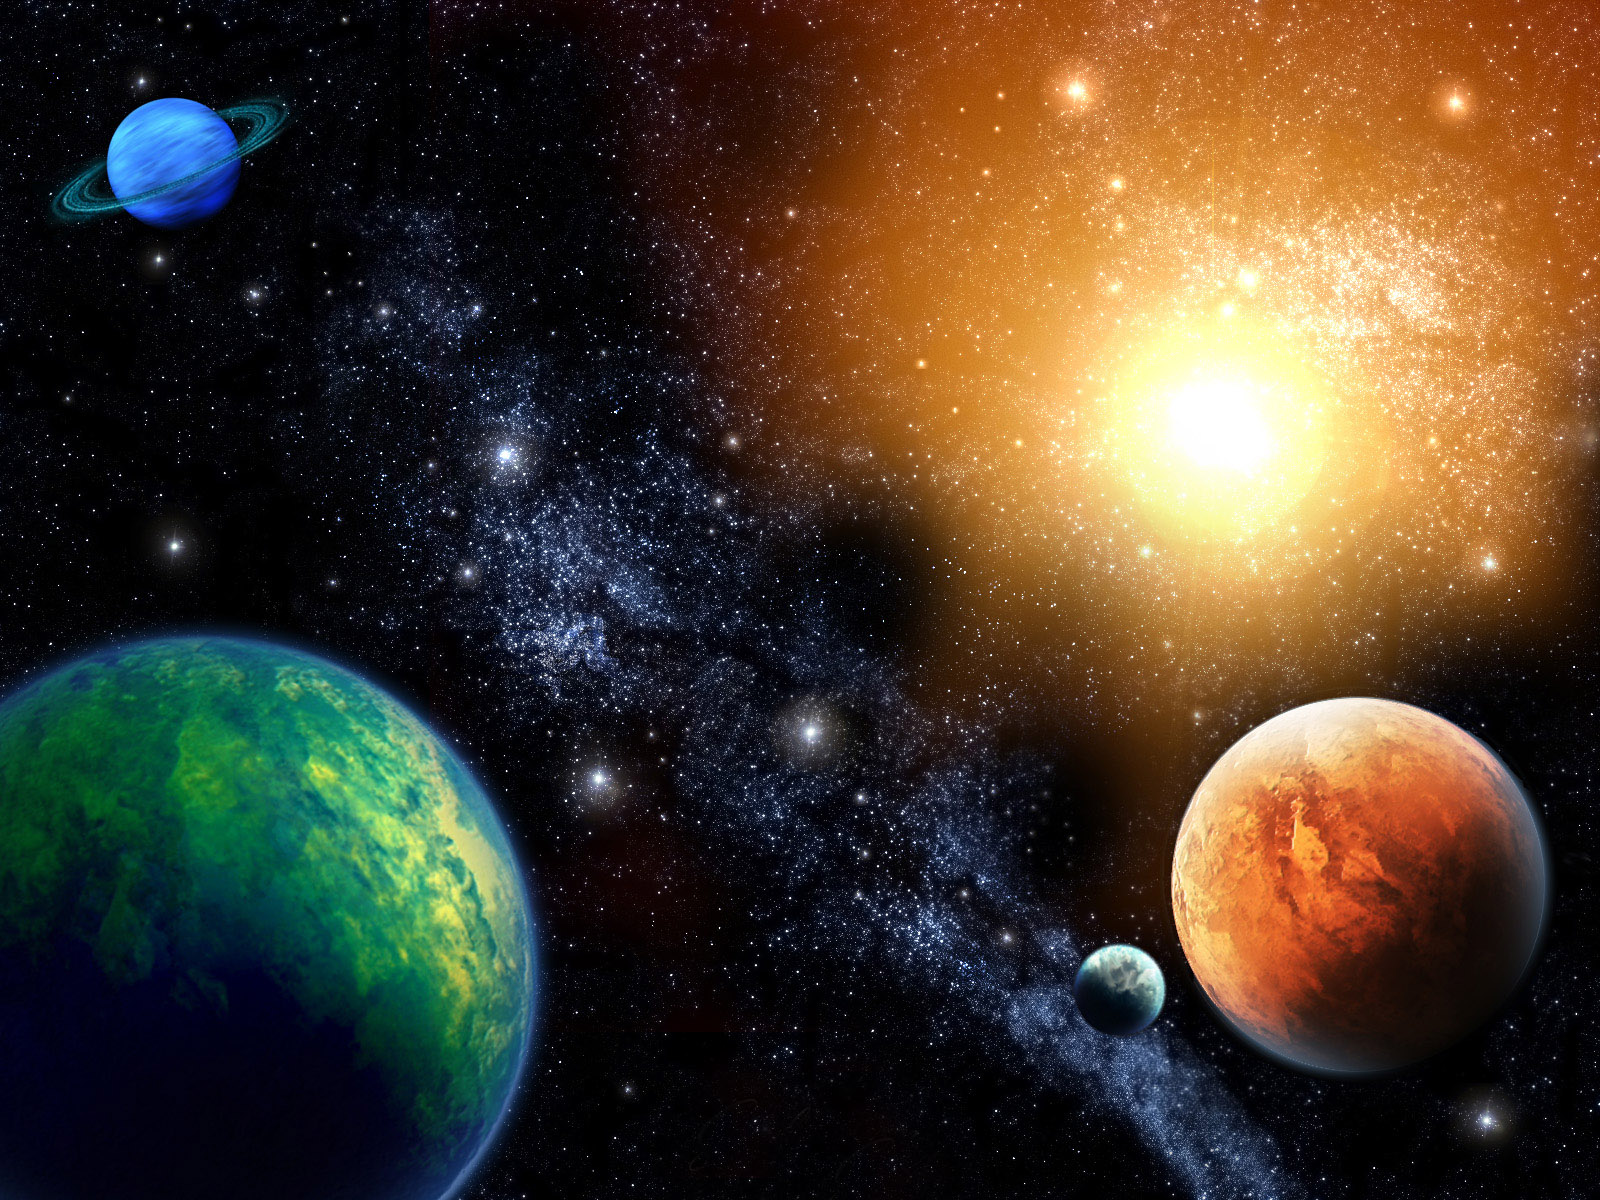 Clip art and picture amazing pictures of the universe for Sfondi desktop universo